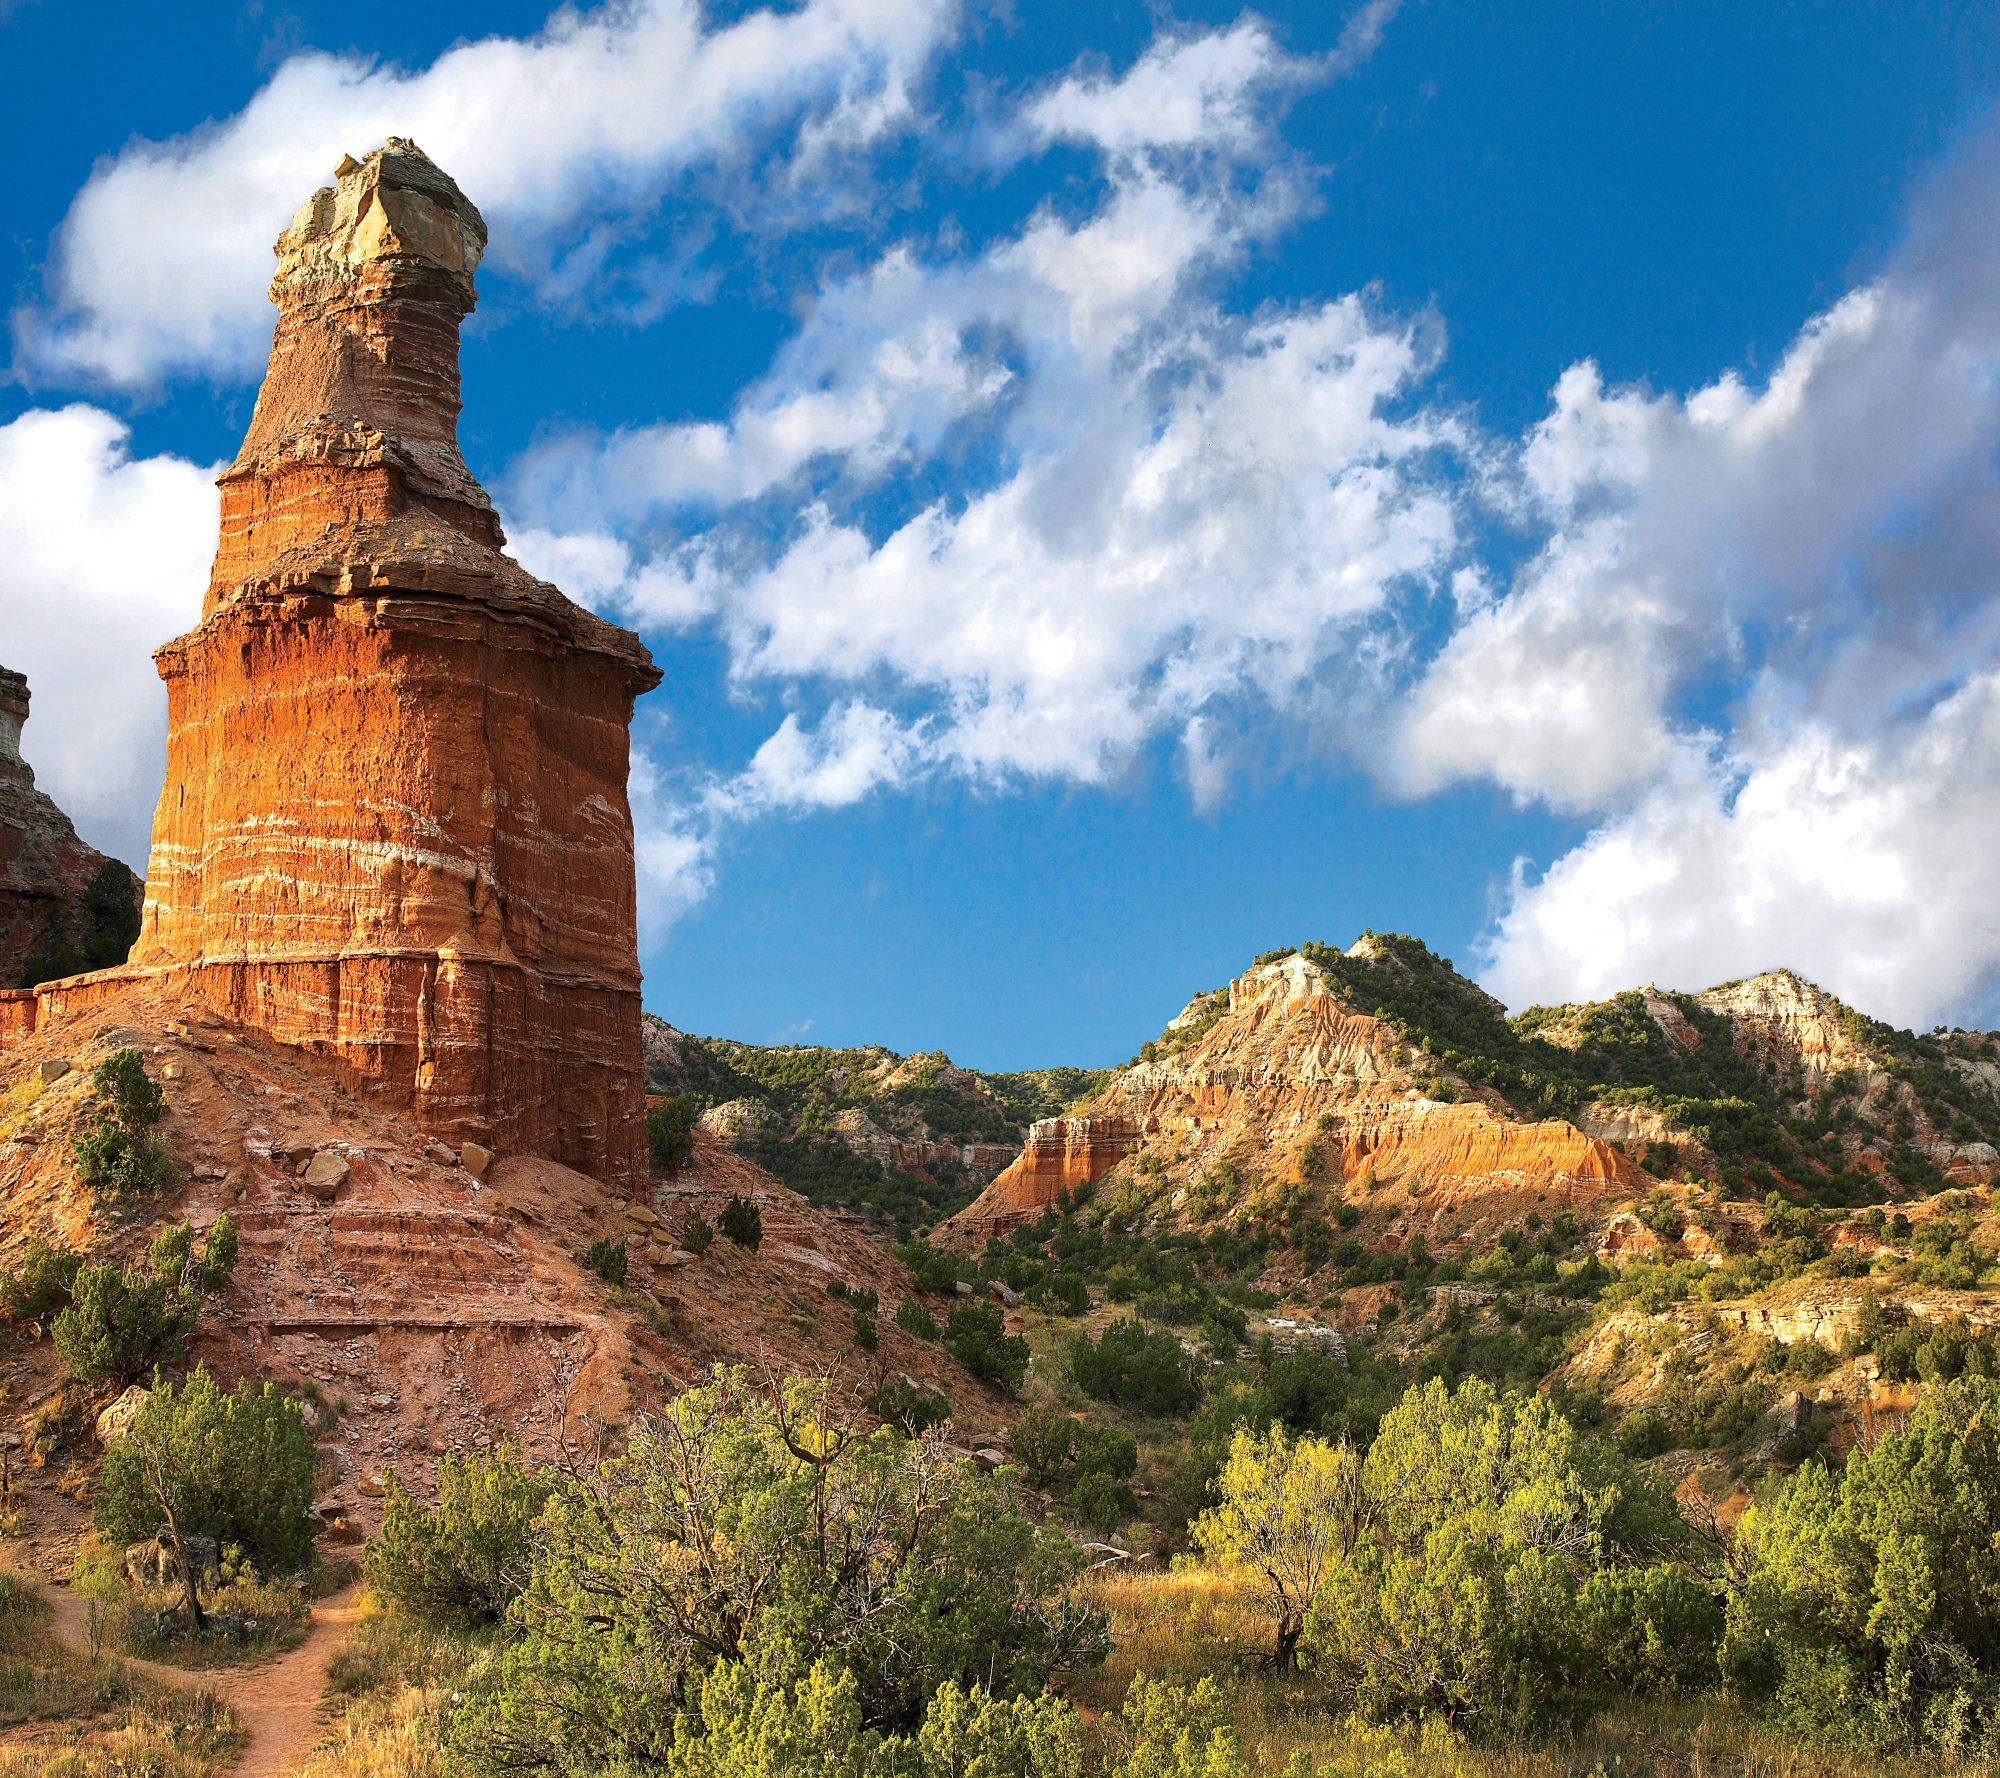 Palo Duro Canyon State Park in Texas